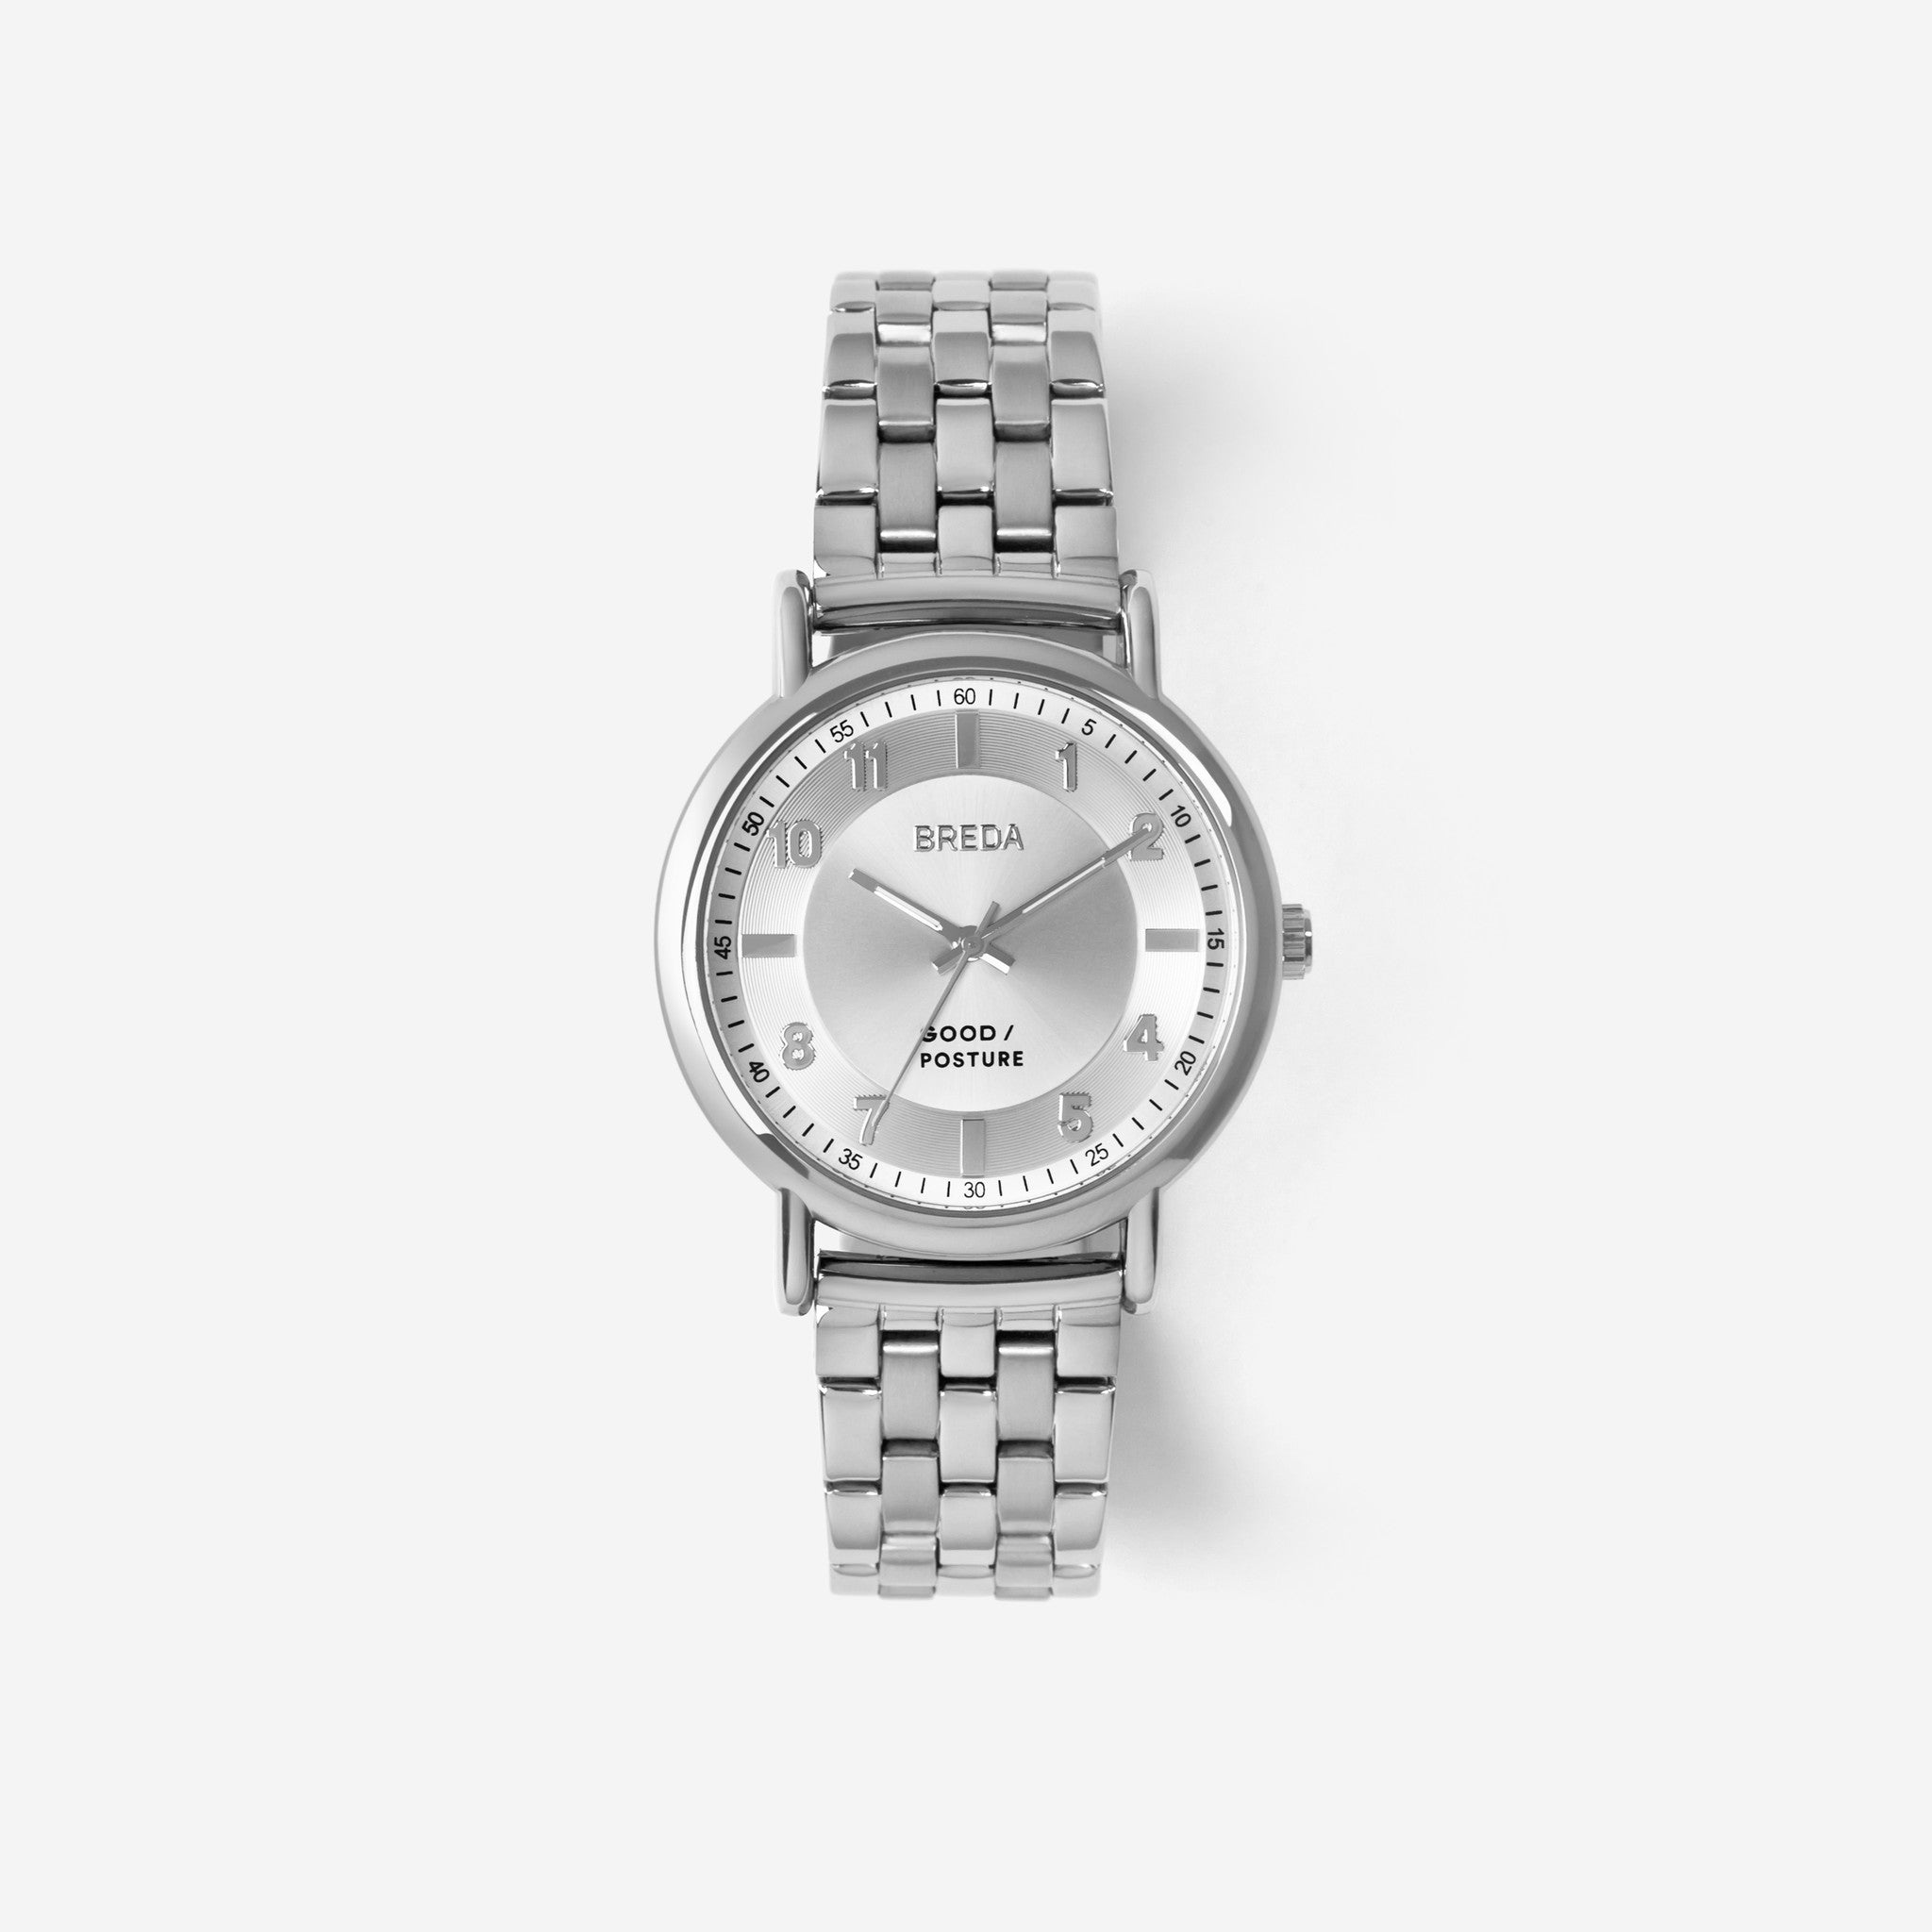 //cdn.shopify.com/s/files/1/0879/6650/products/BREDA-Good-Posture-Theophilus-Martins-Blossom-5017a-Silver-Watch-Front_1024x1024.jpg?v=1490821463